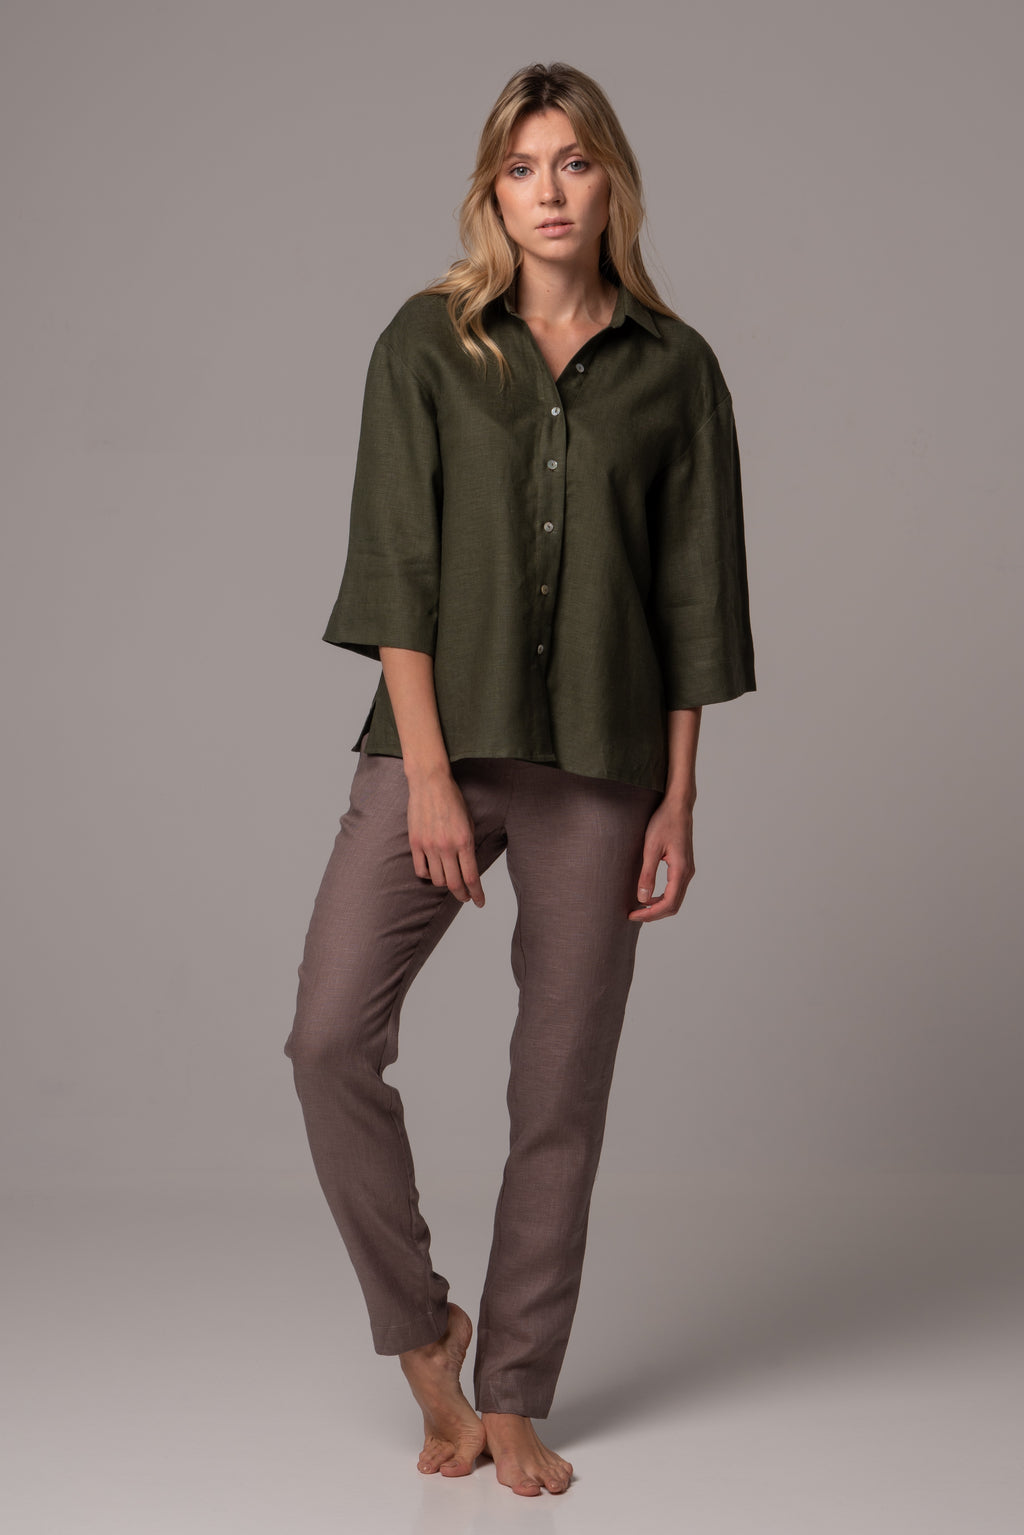 Ripe Olive Wide Sleeve Shirt in Premium European Linen